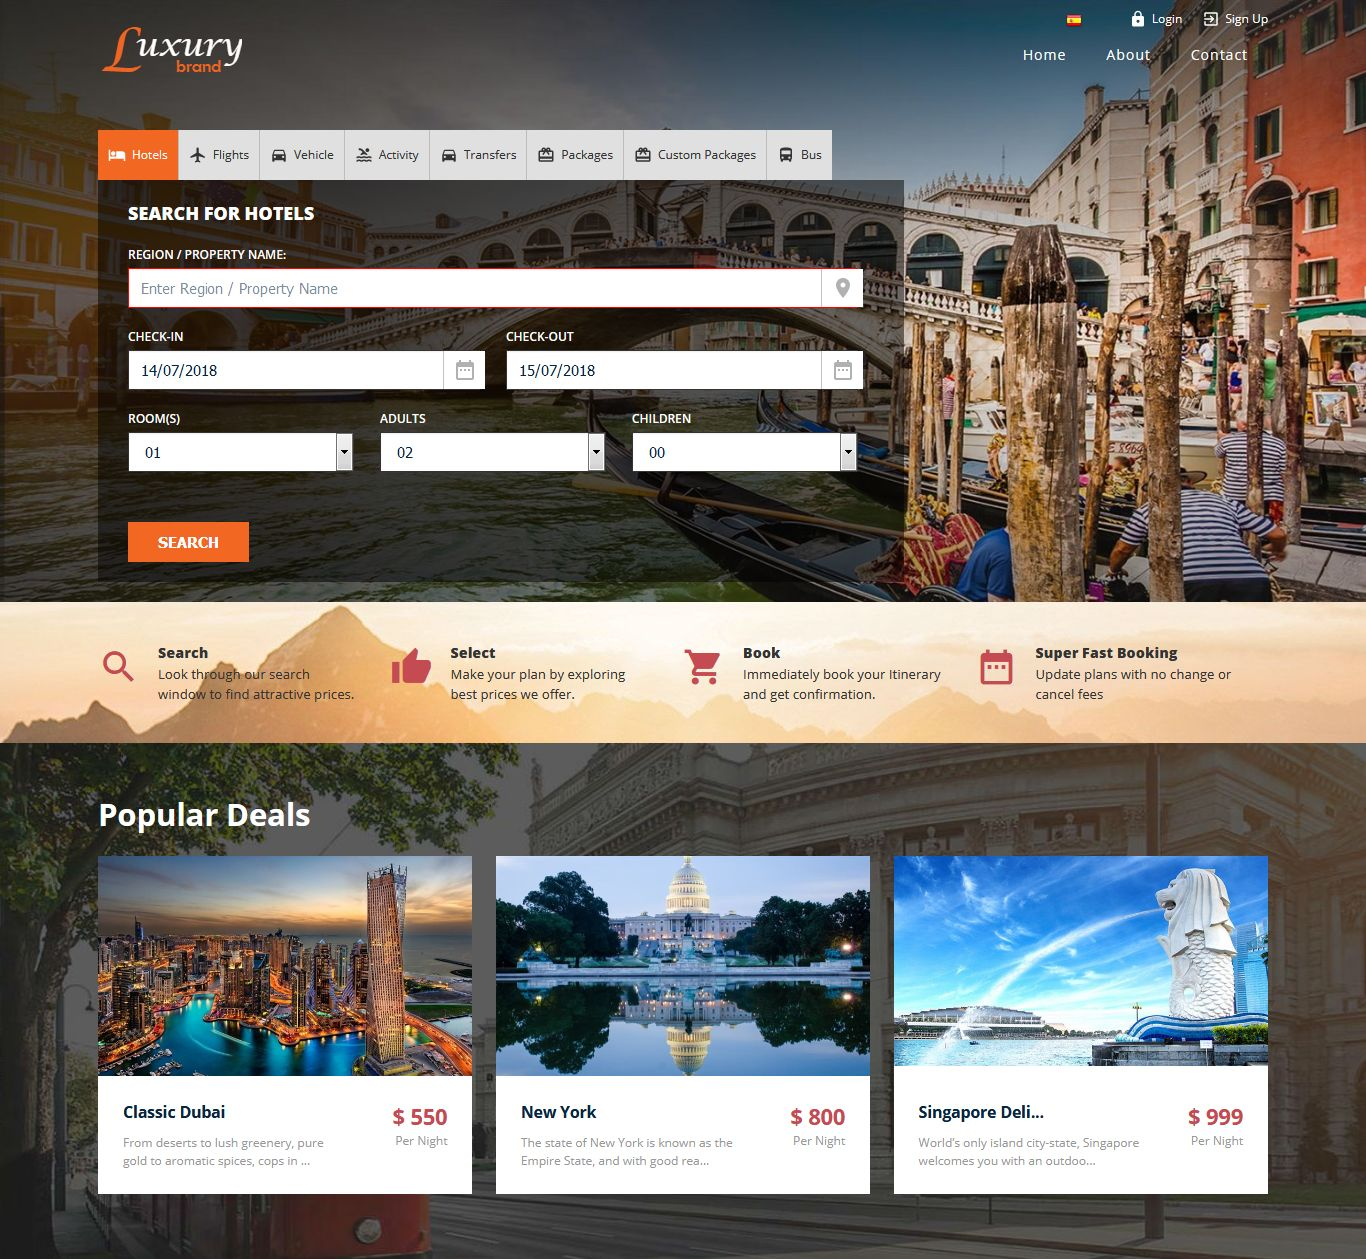 Travel Website SEO - Content Optimization